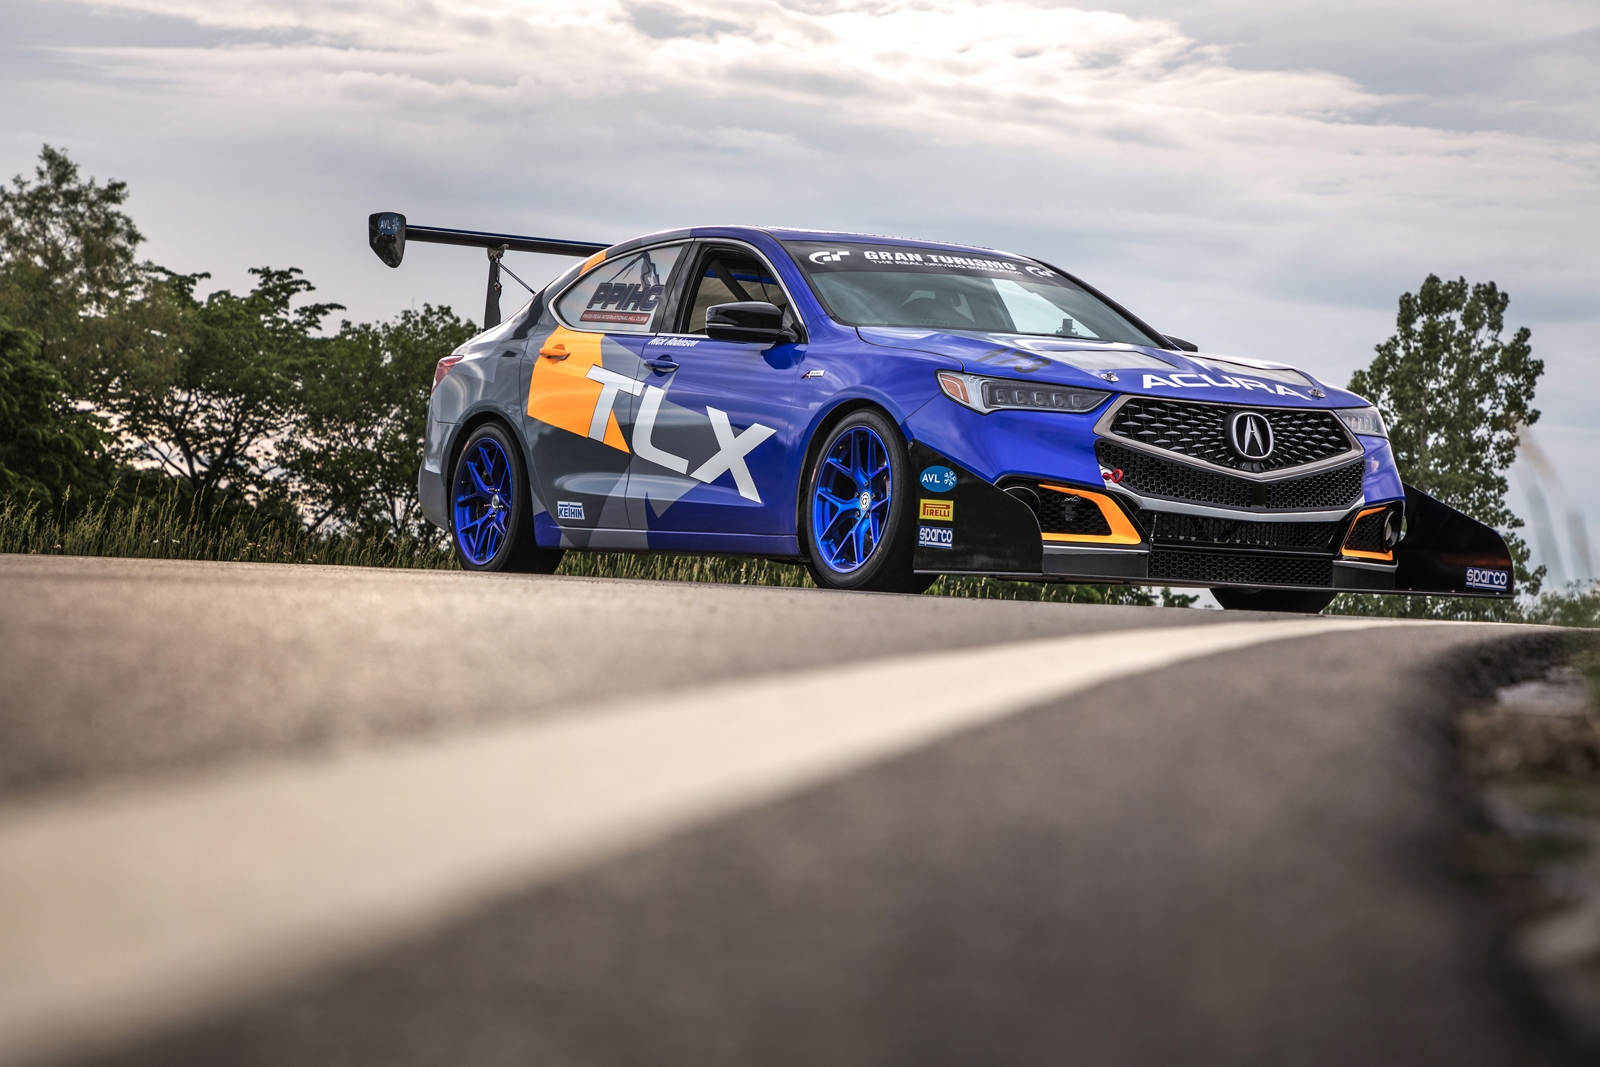 Tlx A Spec >> Acura is Racing at Pikes Peak..With a 2019 RDX » AutoGuide ...